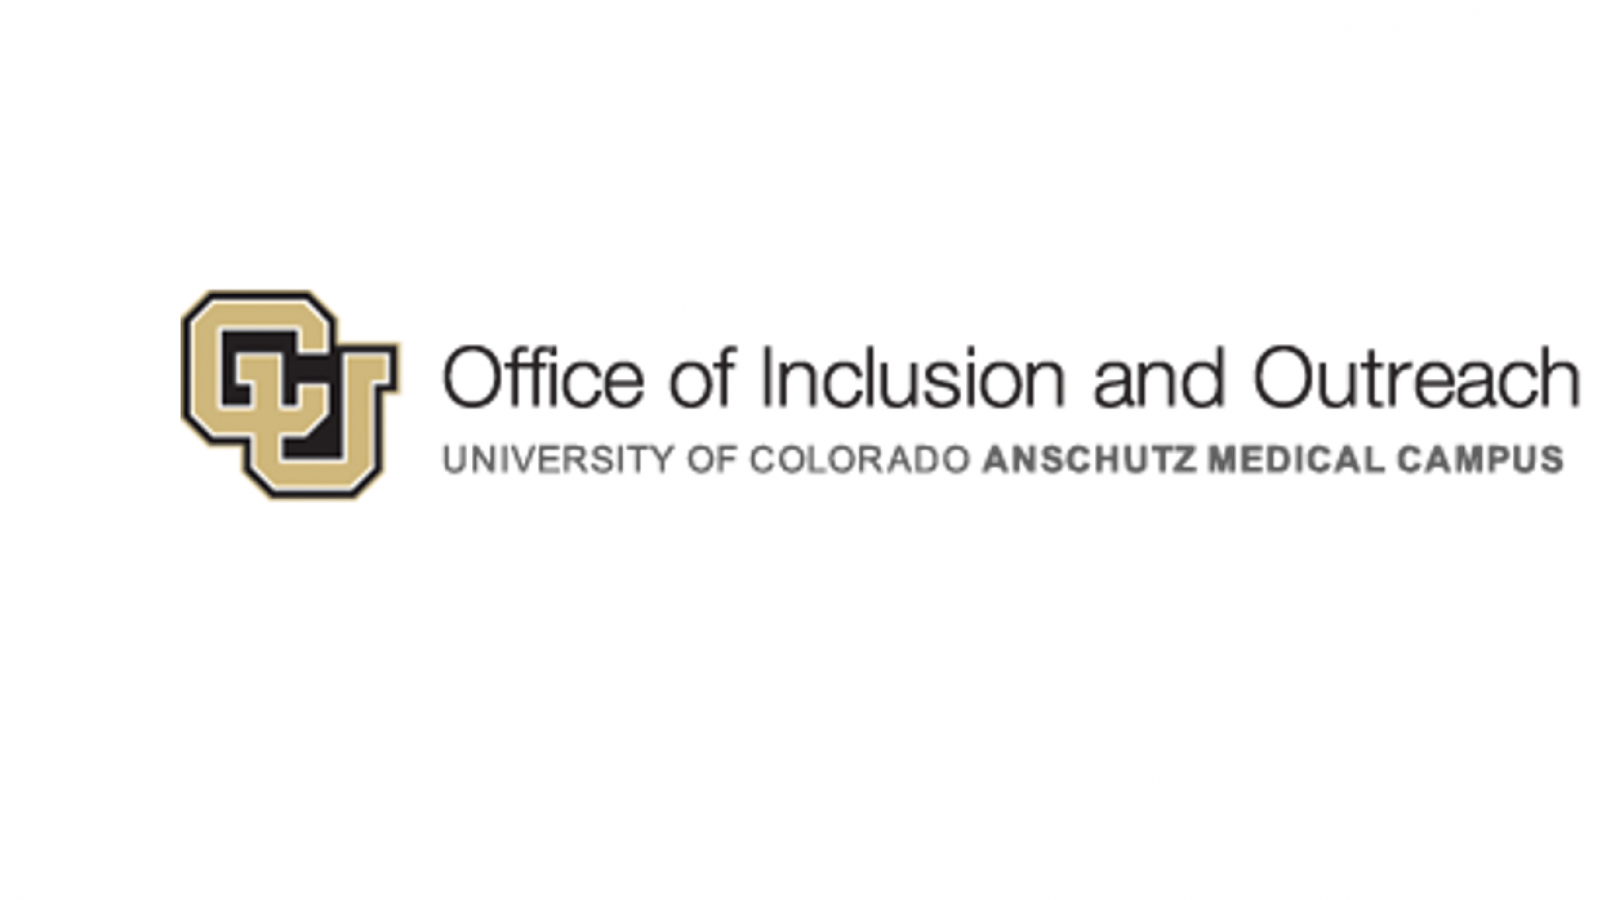 Office of Inclusion and Outreach Logo